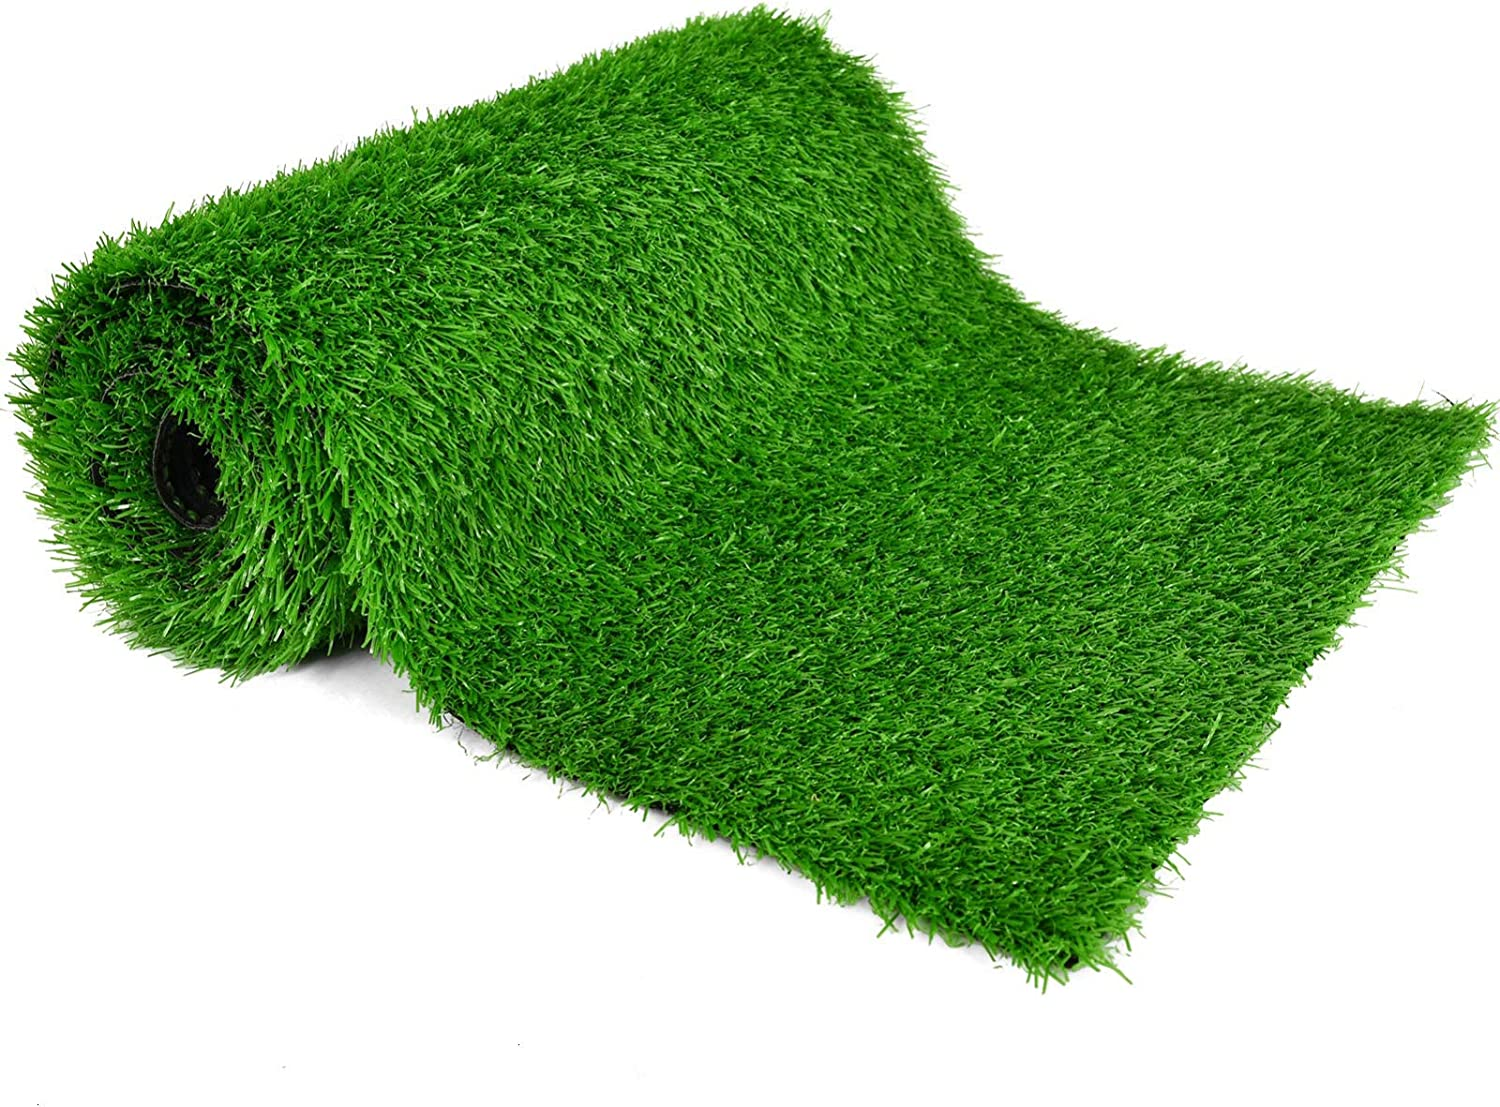 COYMOS Faux Grass Table Runner for Table Decoration Grass Rug Spring Summer Party Decor, 14 Inch x 72 Inch